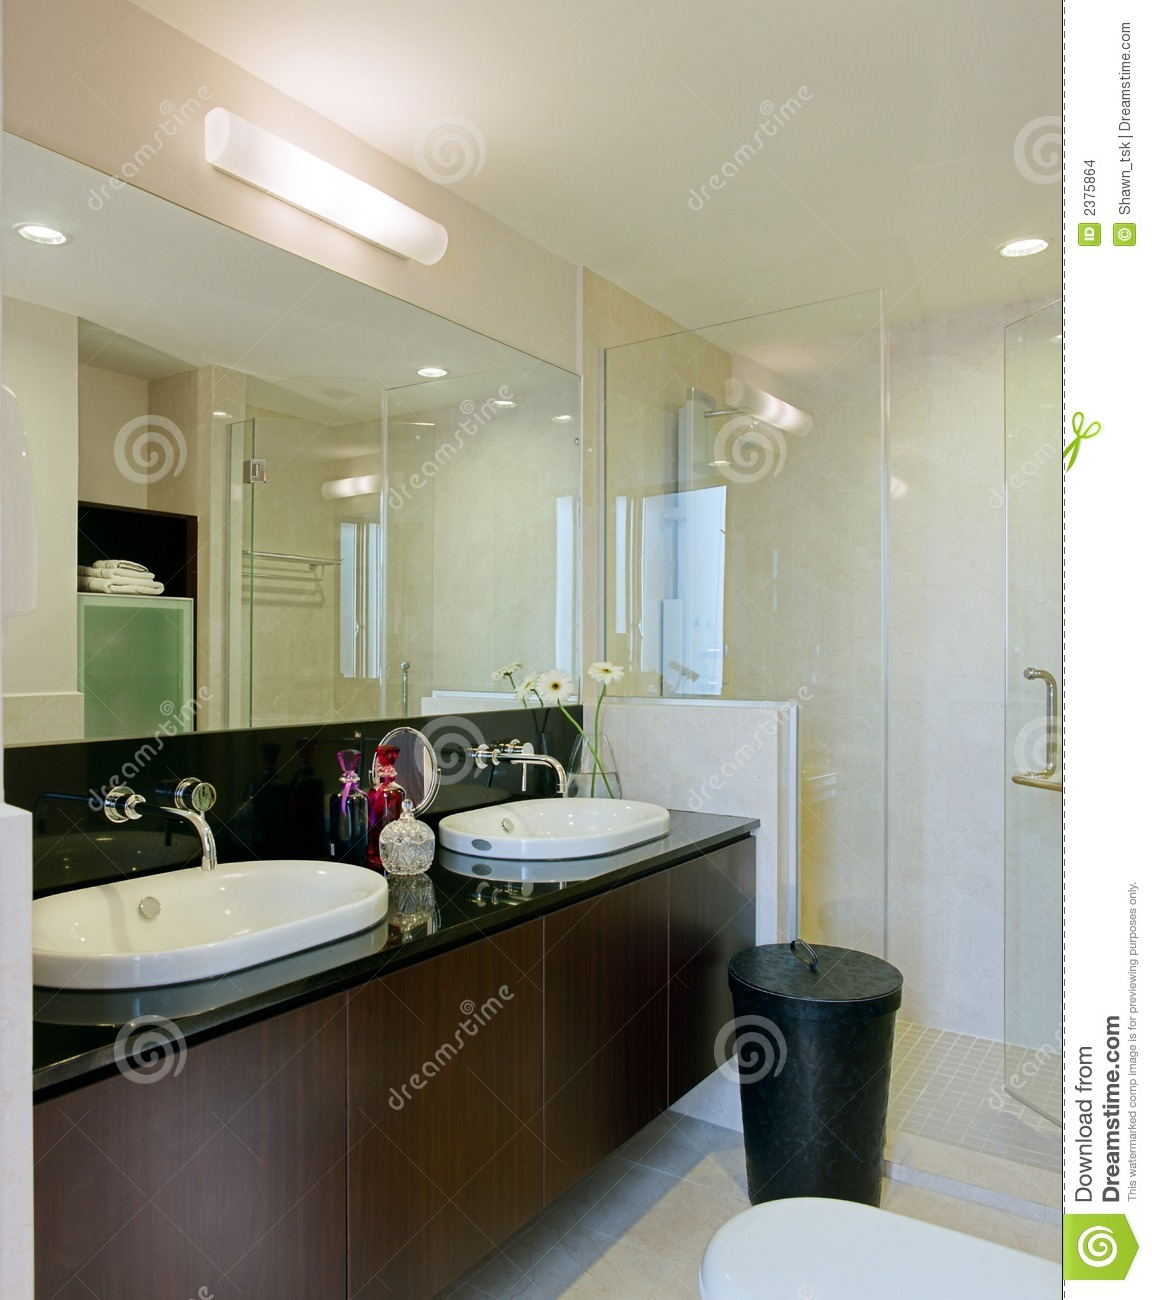 Interior design bathroom stock photo image of cabinet 2375864 Bathroom interior designs photos